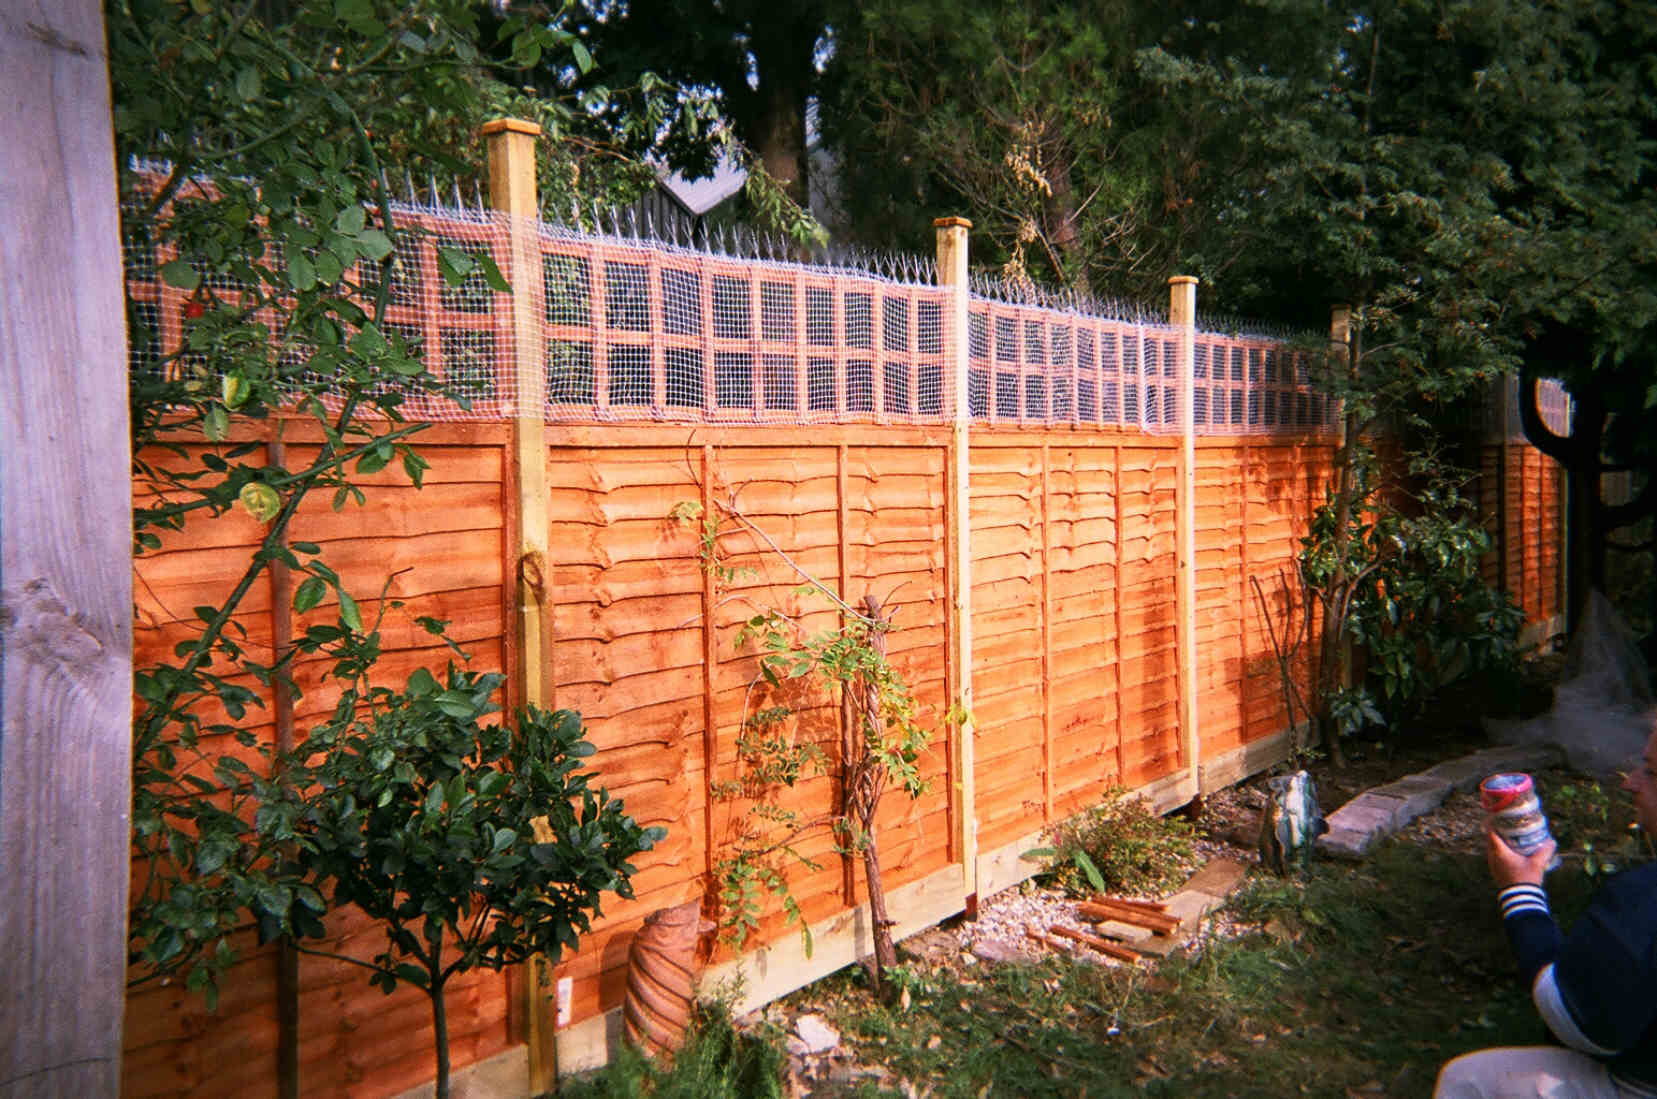 Build A Garden Fence - Low Cost Ideas - EzineArticles Submission